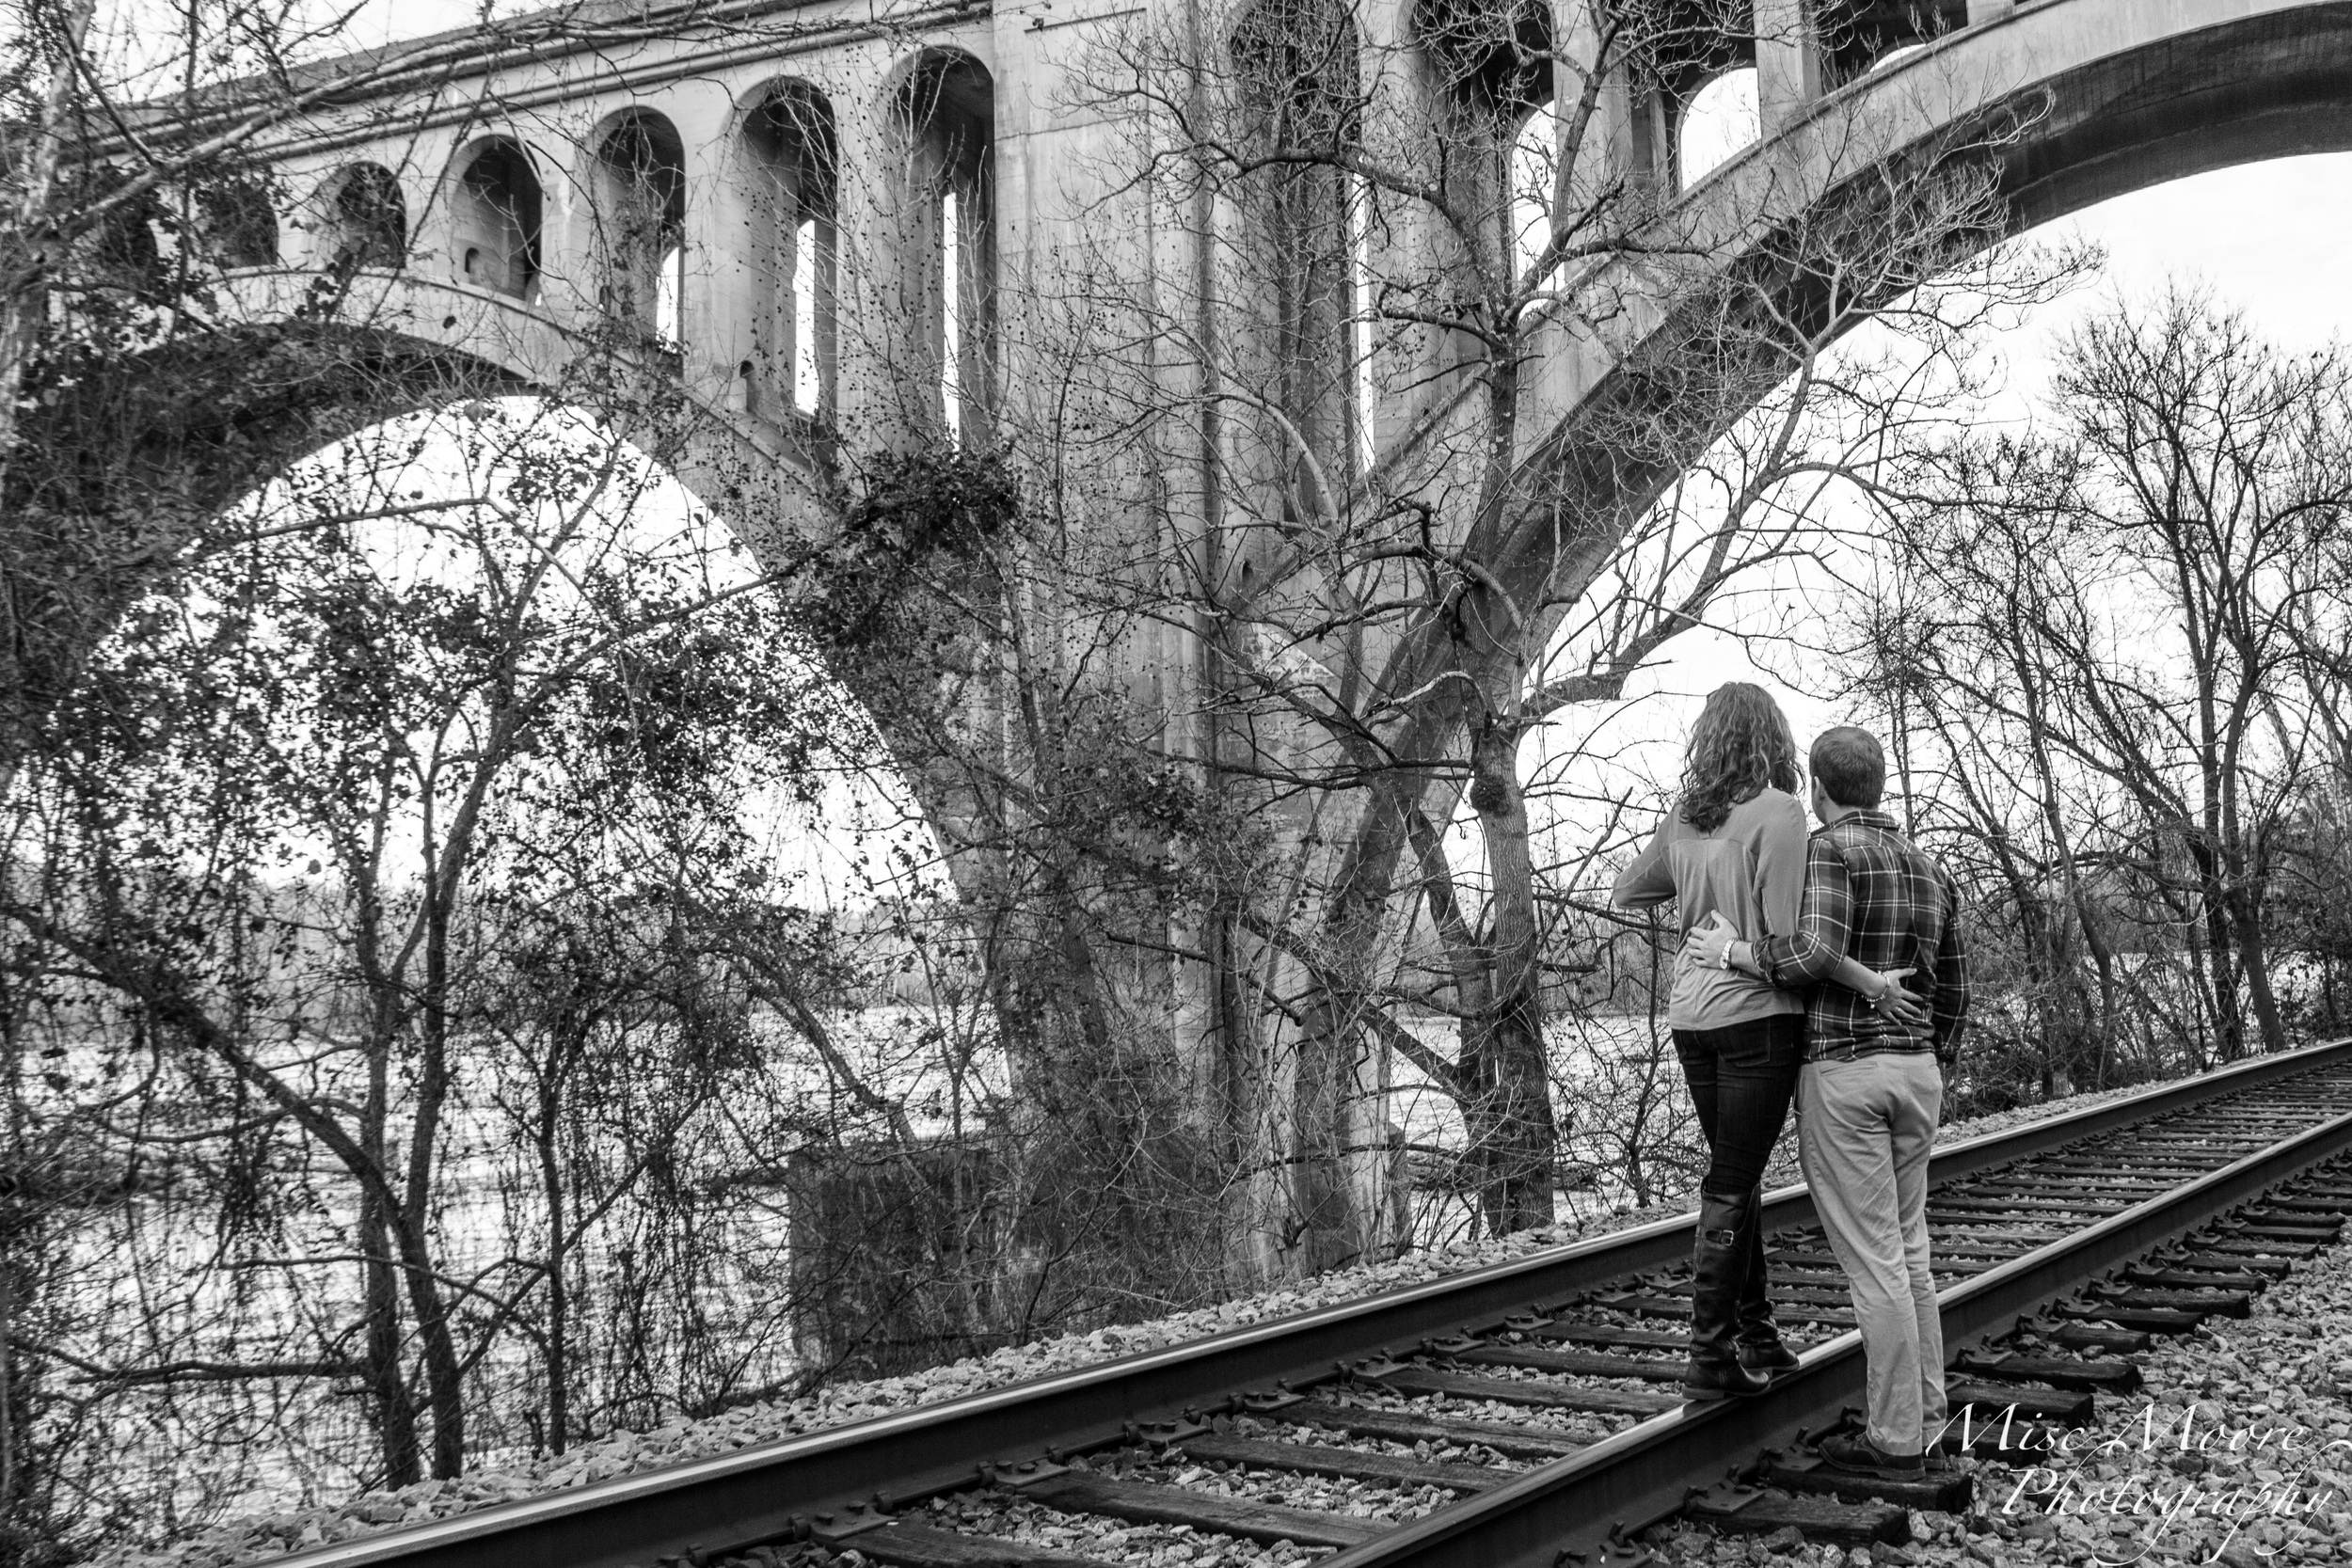 Time with my honey on the tracks, made possible with live view and a remote trigger in the form of a Weye Feye S.